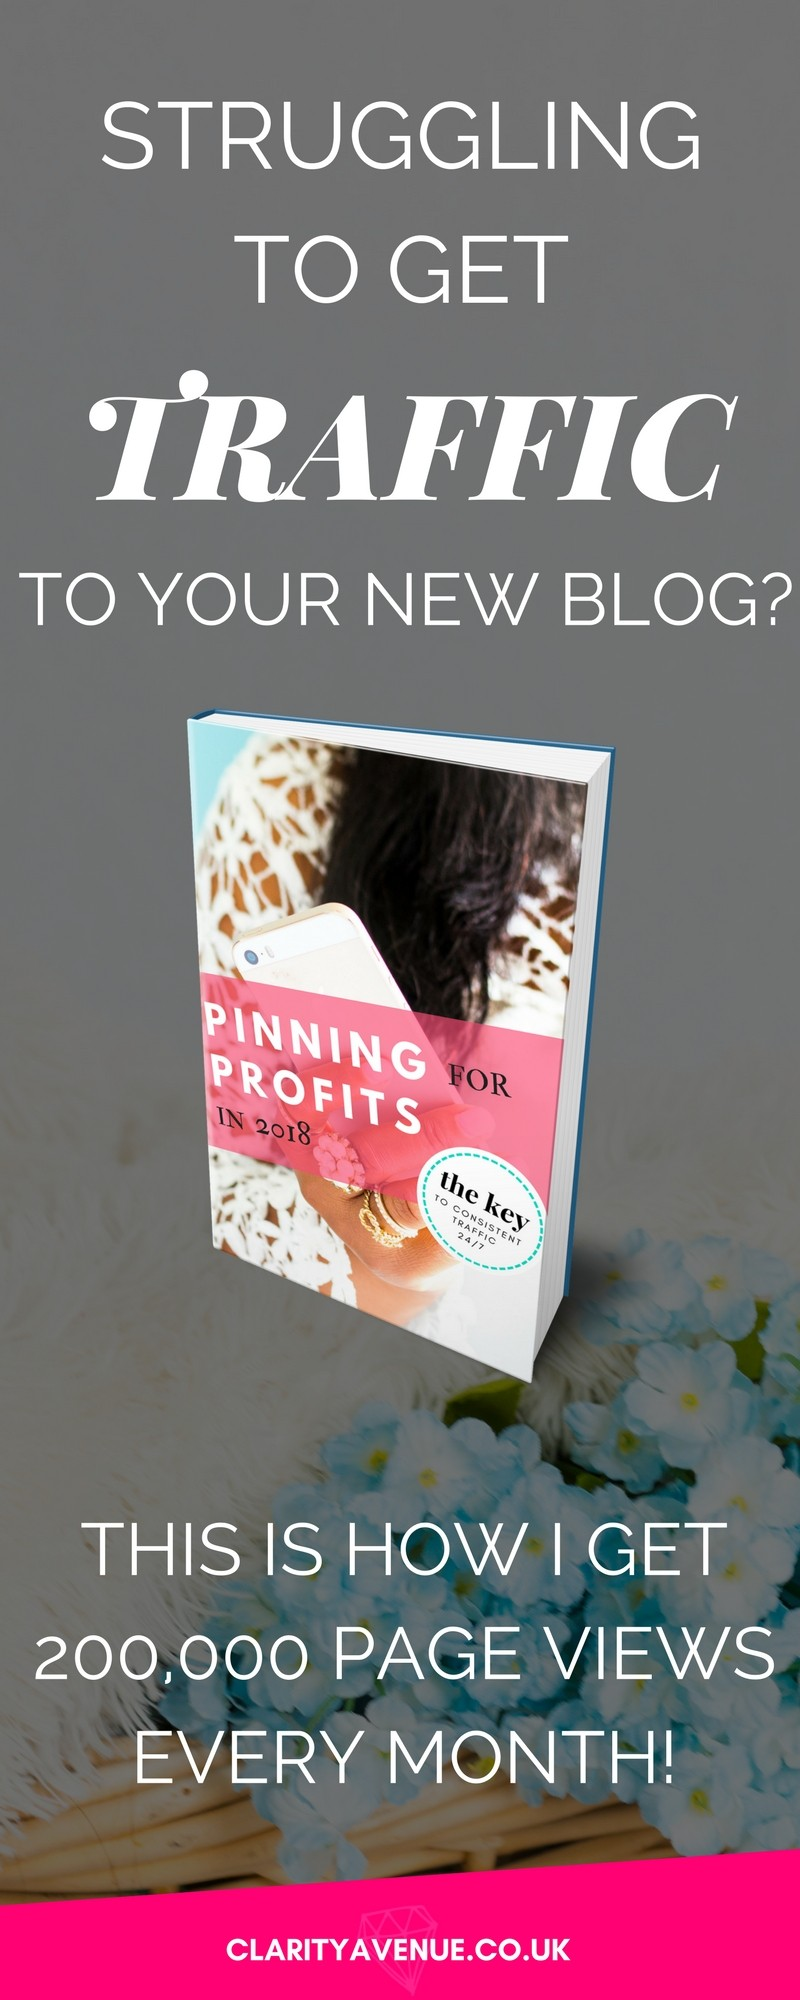 Are you struggling to get traffic to your new blog? Find out the exact strategy I use to get over 200,000 page views every month and it keeps growing. If you are a new blogger, getting traffic can be a real pain but you can find out exactly how to get endless traffic from Pinterest! With free lifetime updates. Become a Pinterest Ninja and kick but! #bloggingtips #traffic #blogging #makemoney #makemoneyonline #c-ave